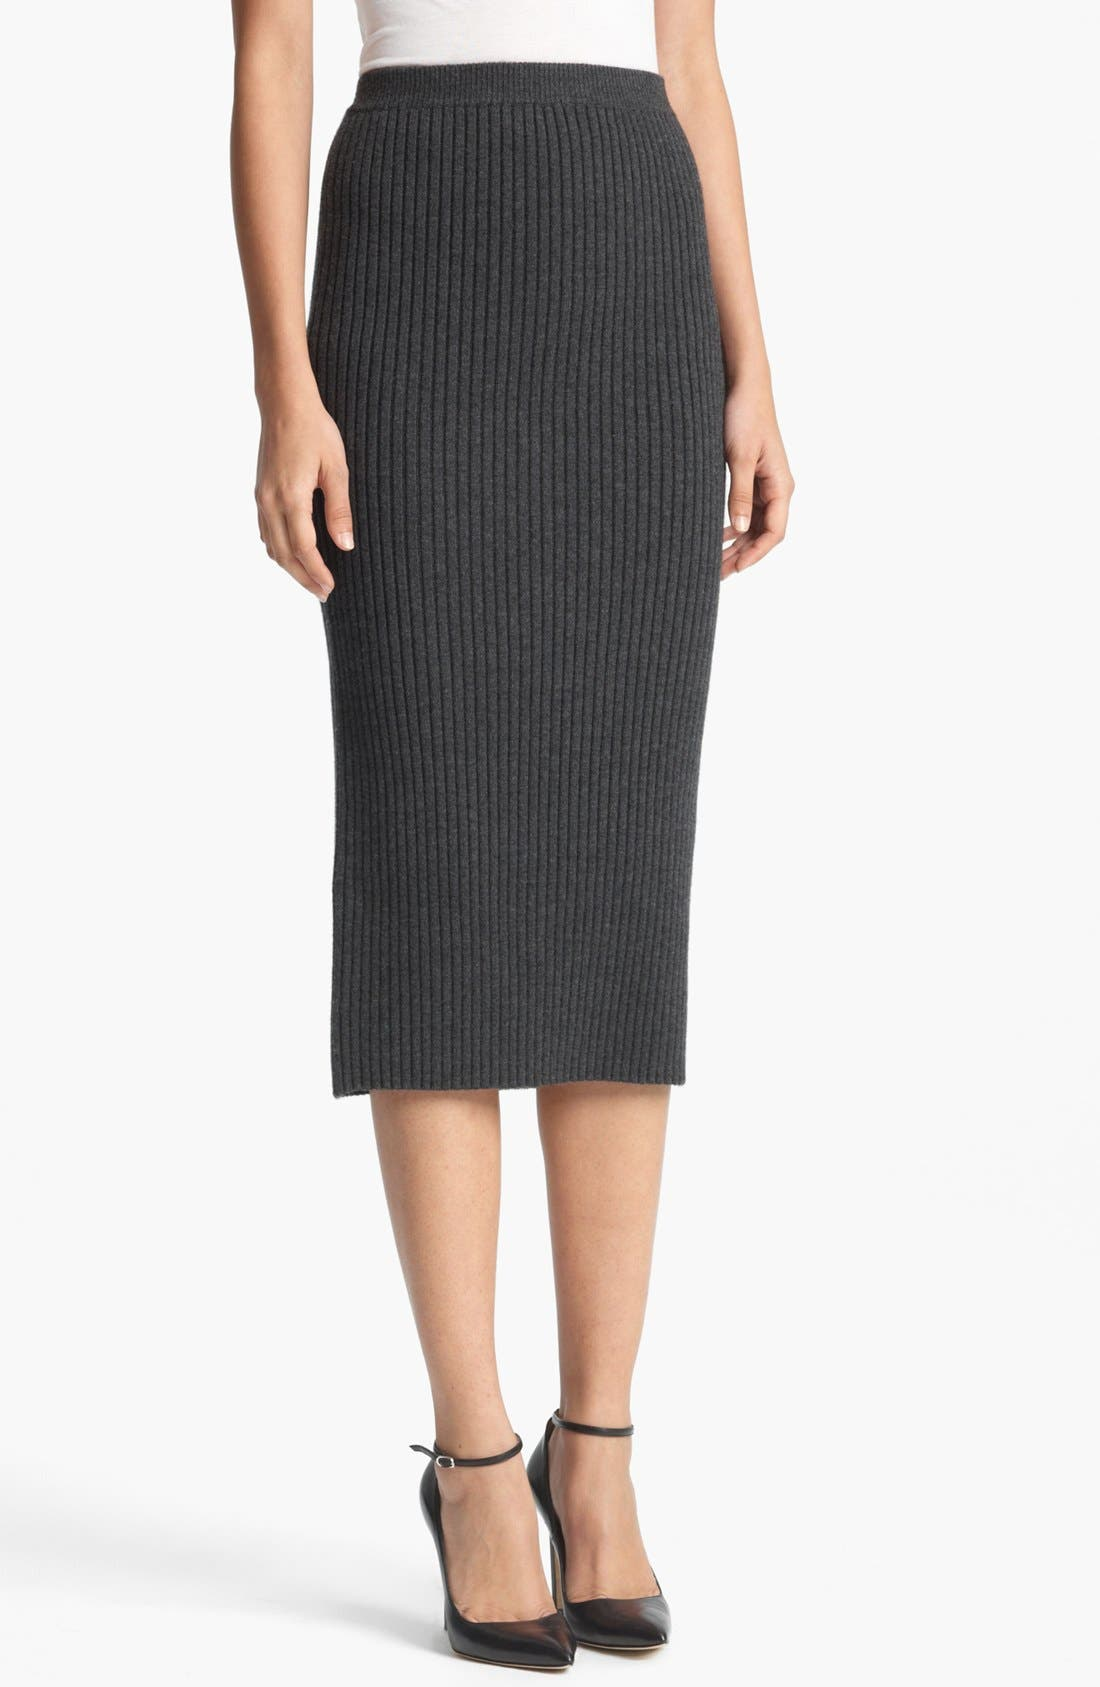 Alternate Image 1 Selected - Michael Kors Ribbed Tube Skirt